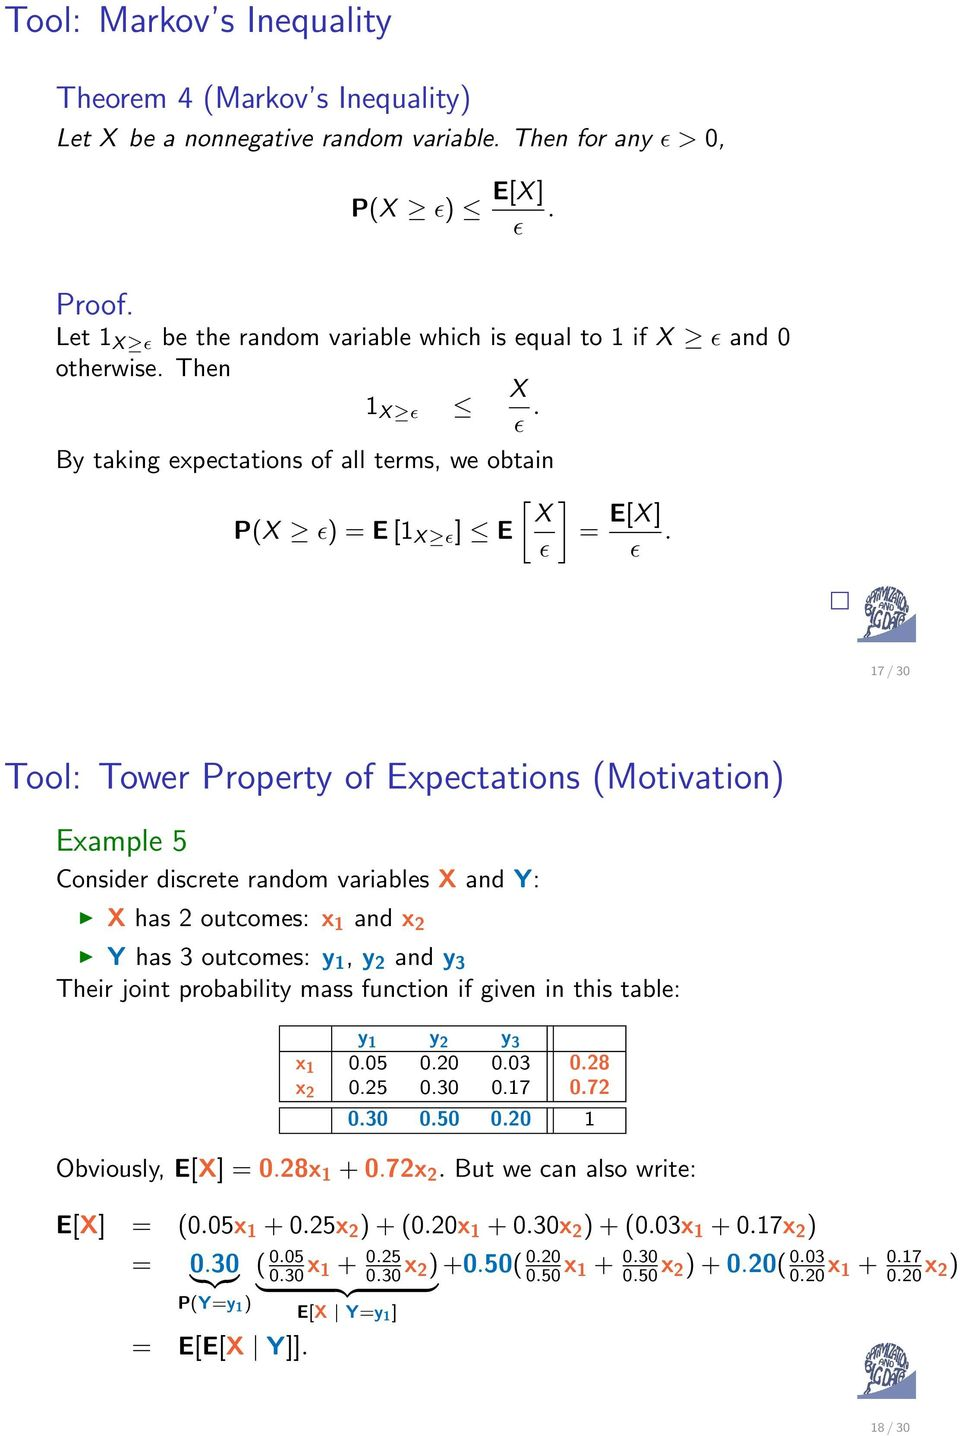 ɛ 17 / 30 Tool: Tower Property of Expectations (Motivation) Example 5 Consider discrete random variables X and Y: X has 2 outcomes: x 1 and x 2 Y has 3 outcomes: y 1, y 2 and y 3 Their joint